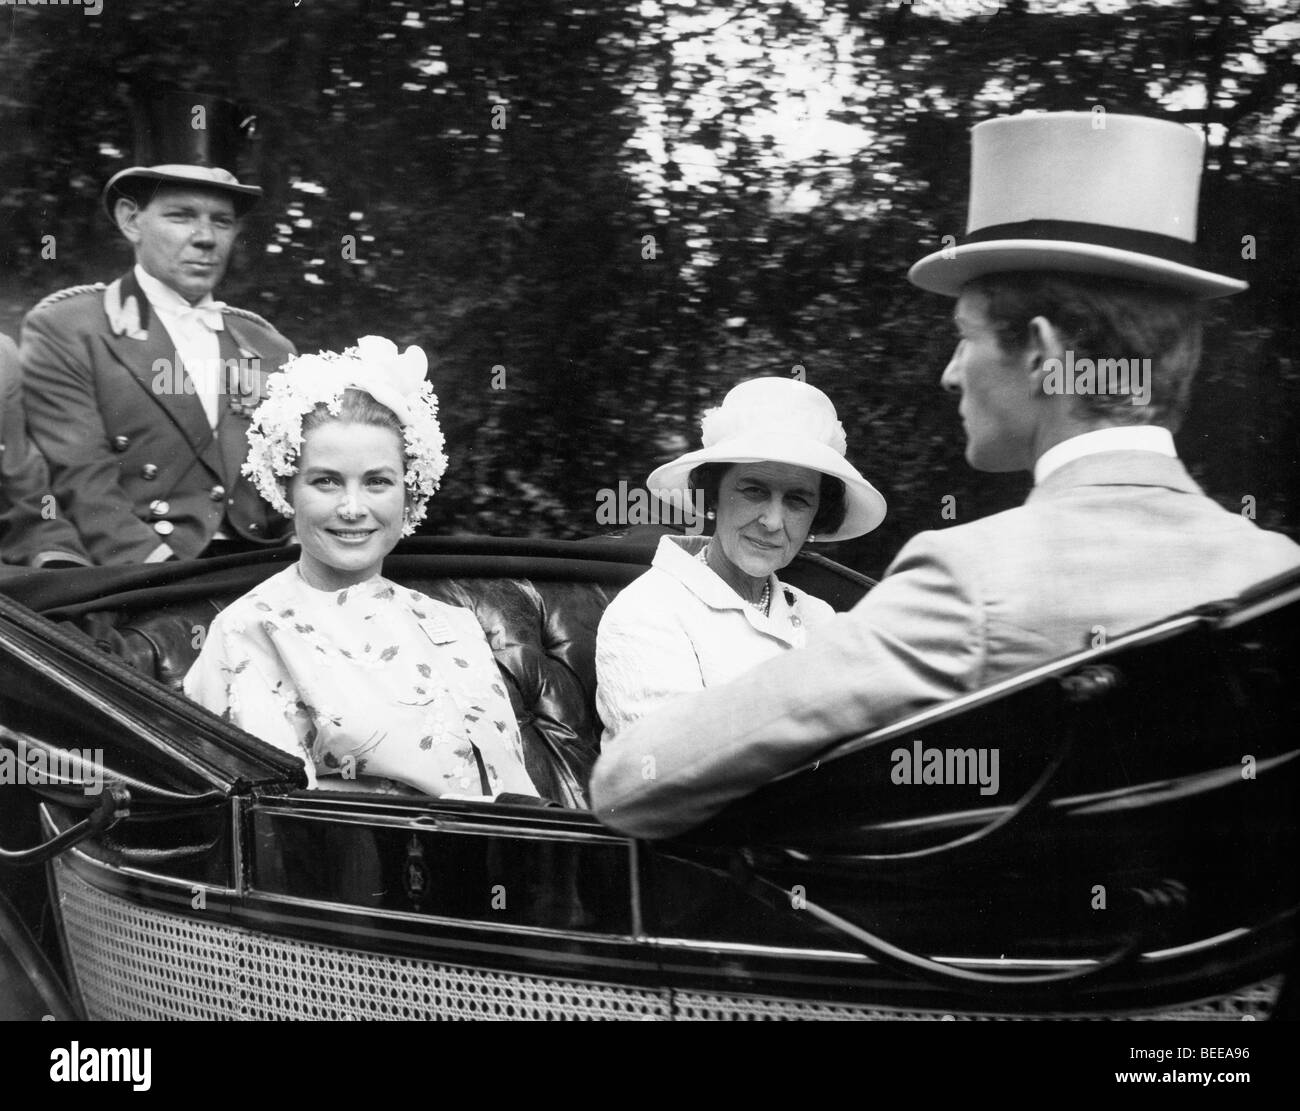 Grace Kelly, Princess of Monaco, left, in a horse drawn carriage. Stock Photo